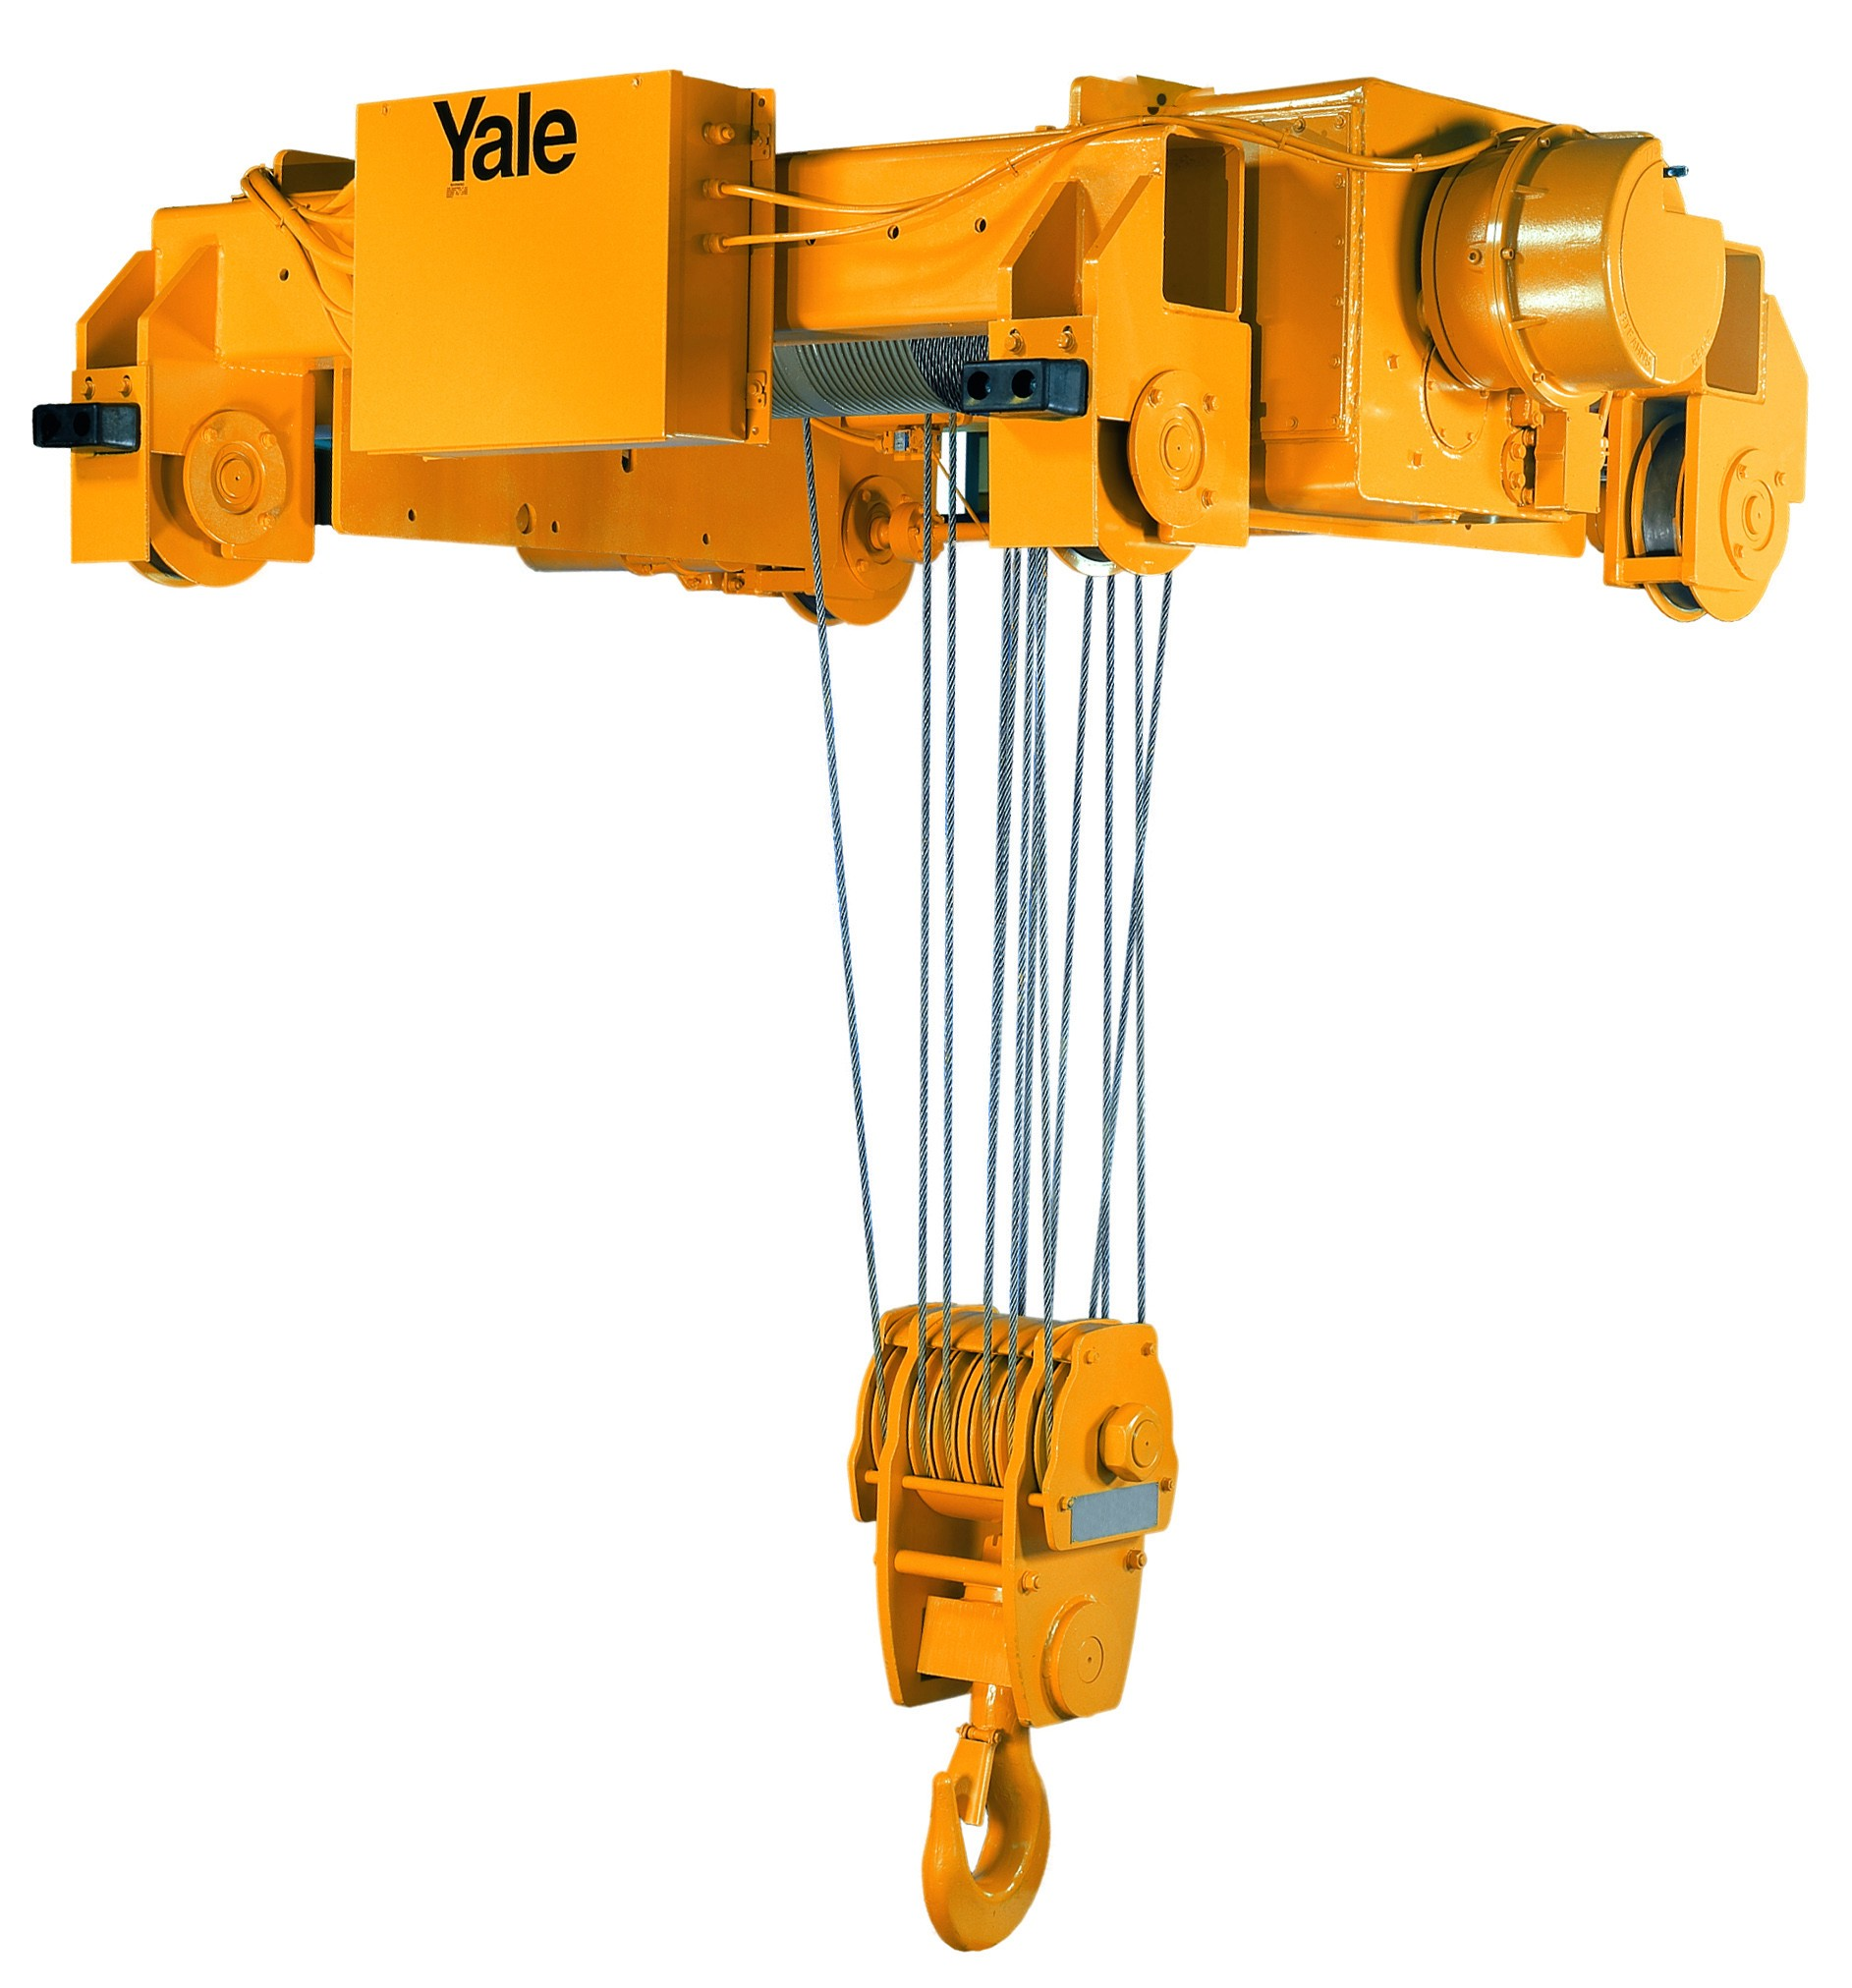 YALE - Cable King 15 Ton Electric Wire Rope Hoist (23fpm & 86' Lift Single Reeve)